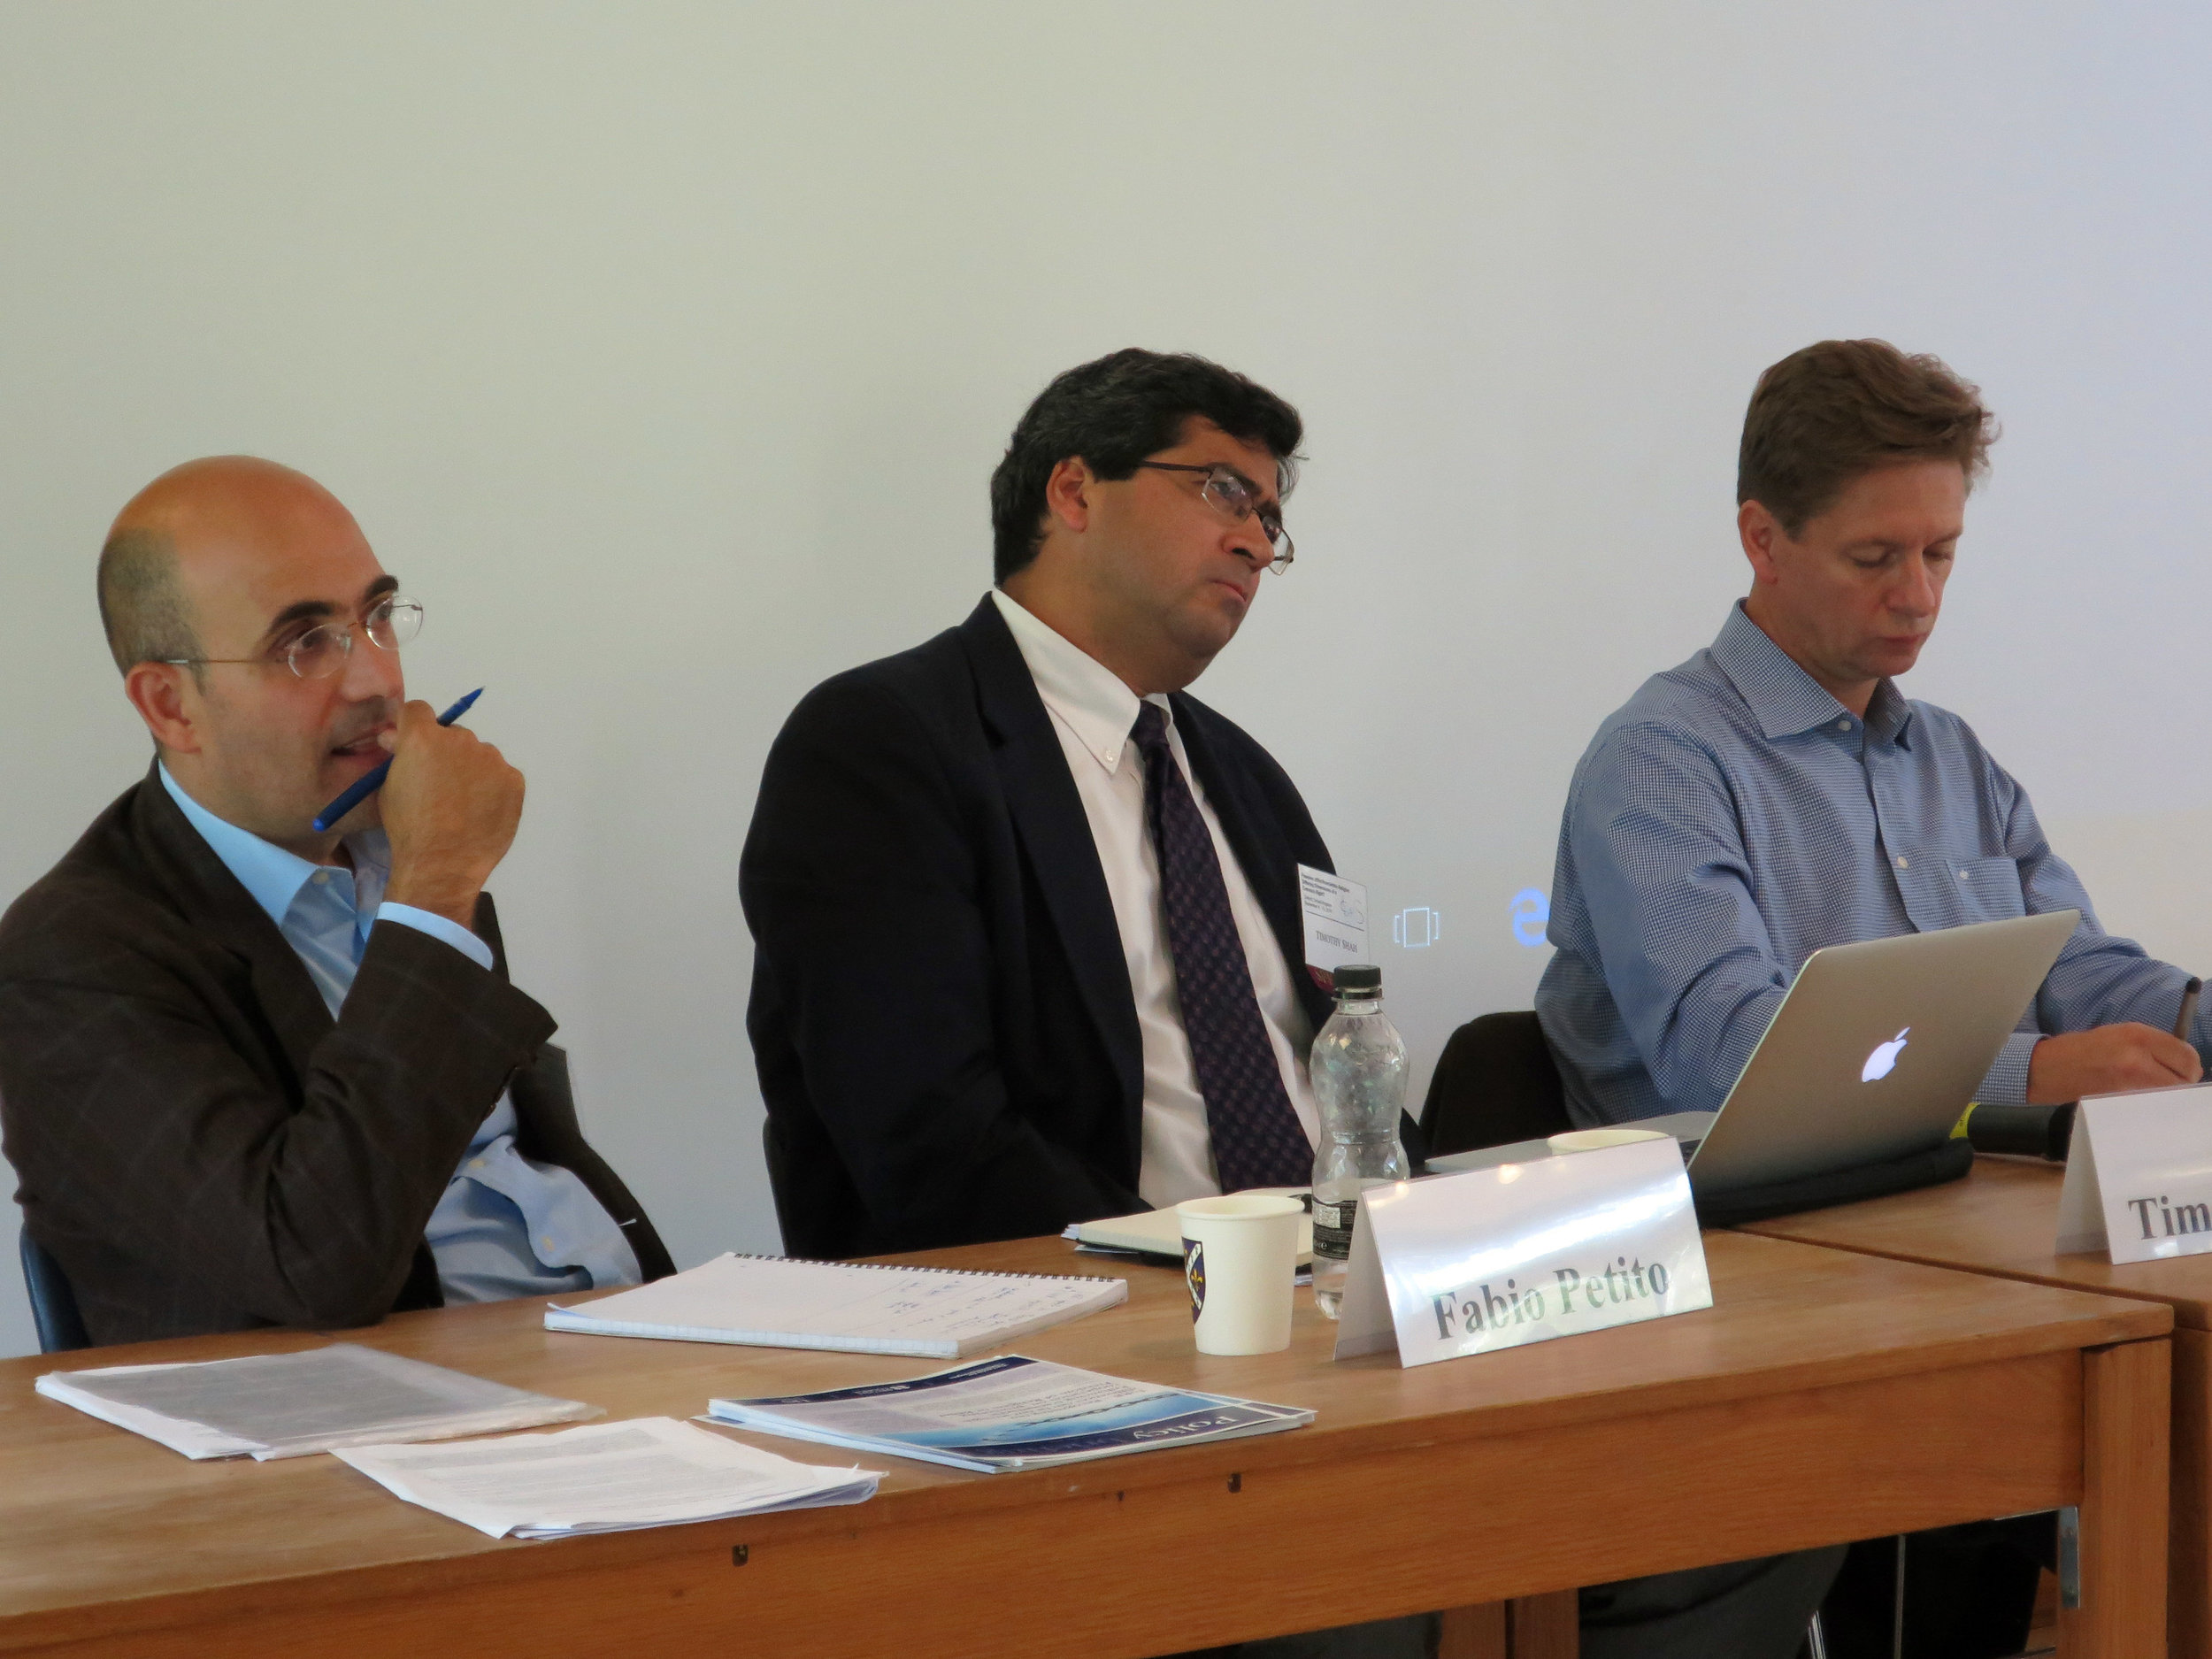 Tim Shah, Senior Advisor, (center) and co-panelists respond to audience questions